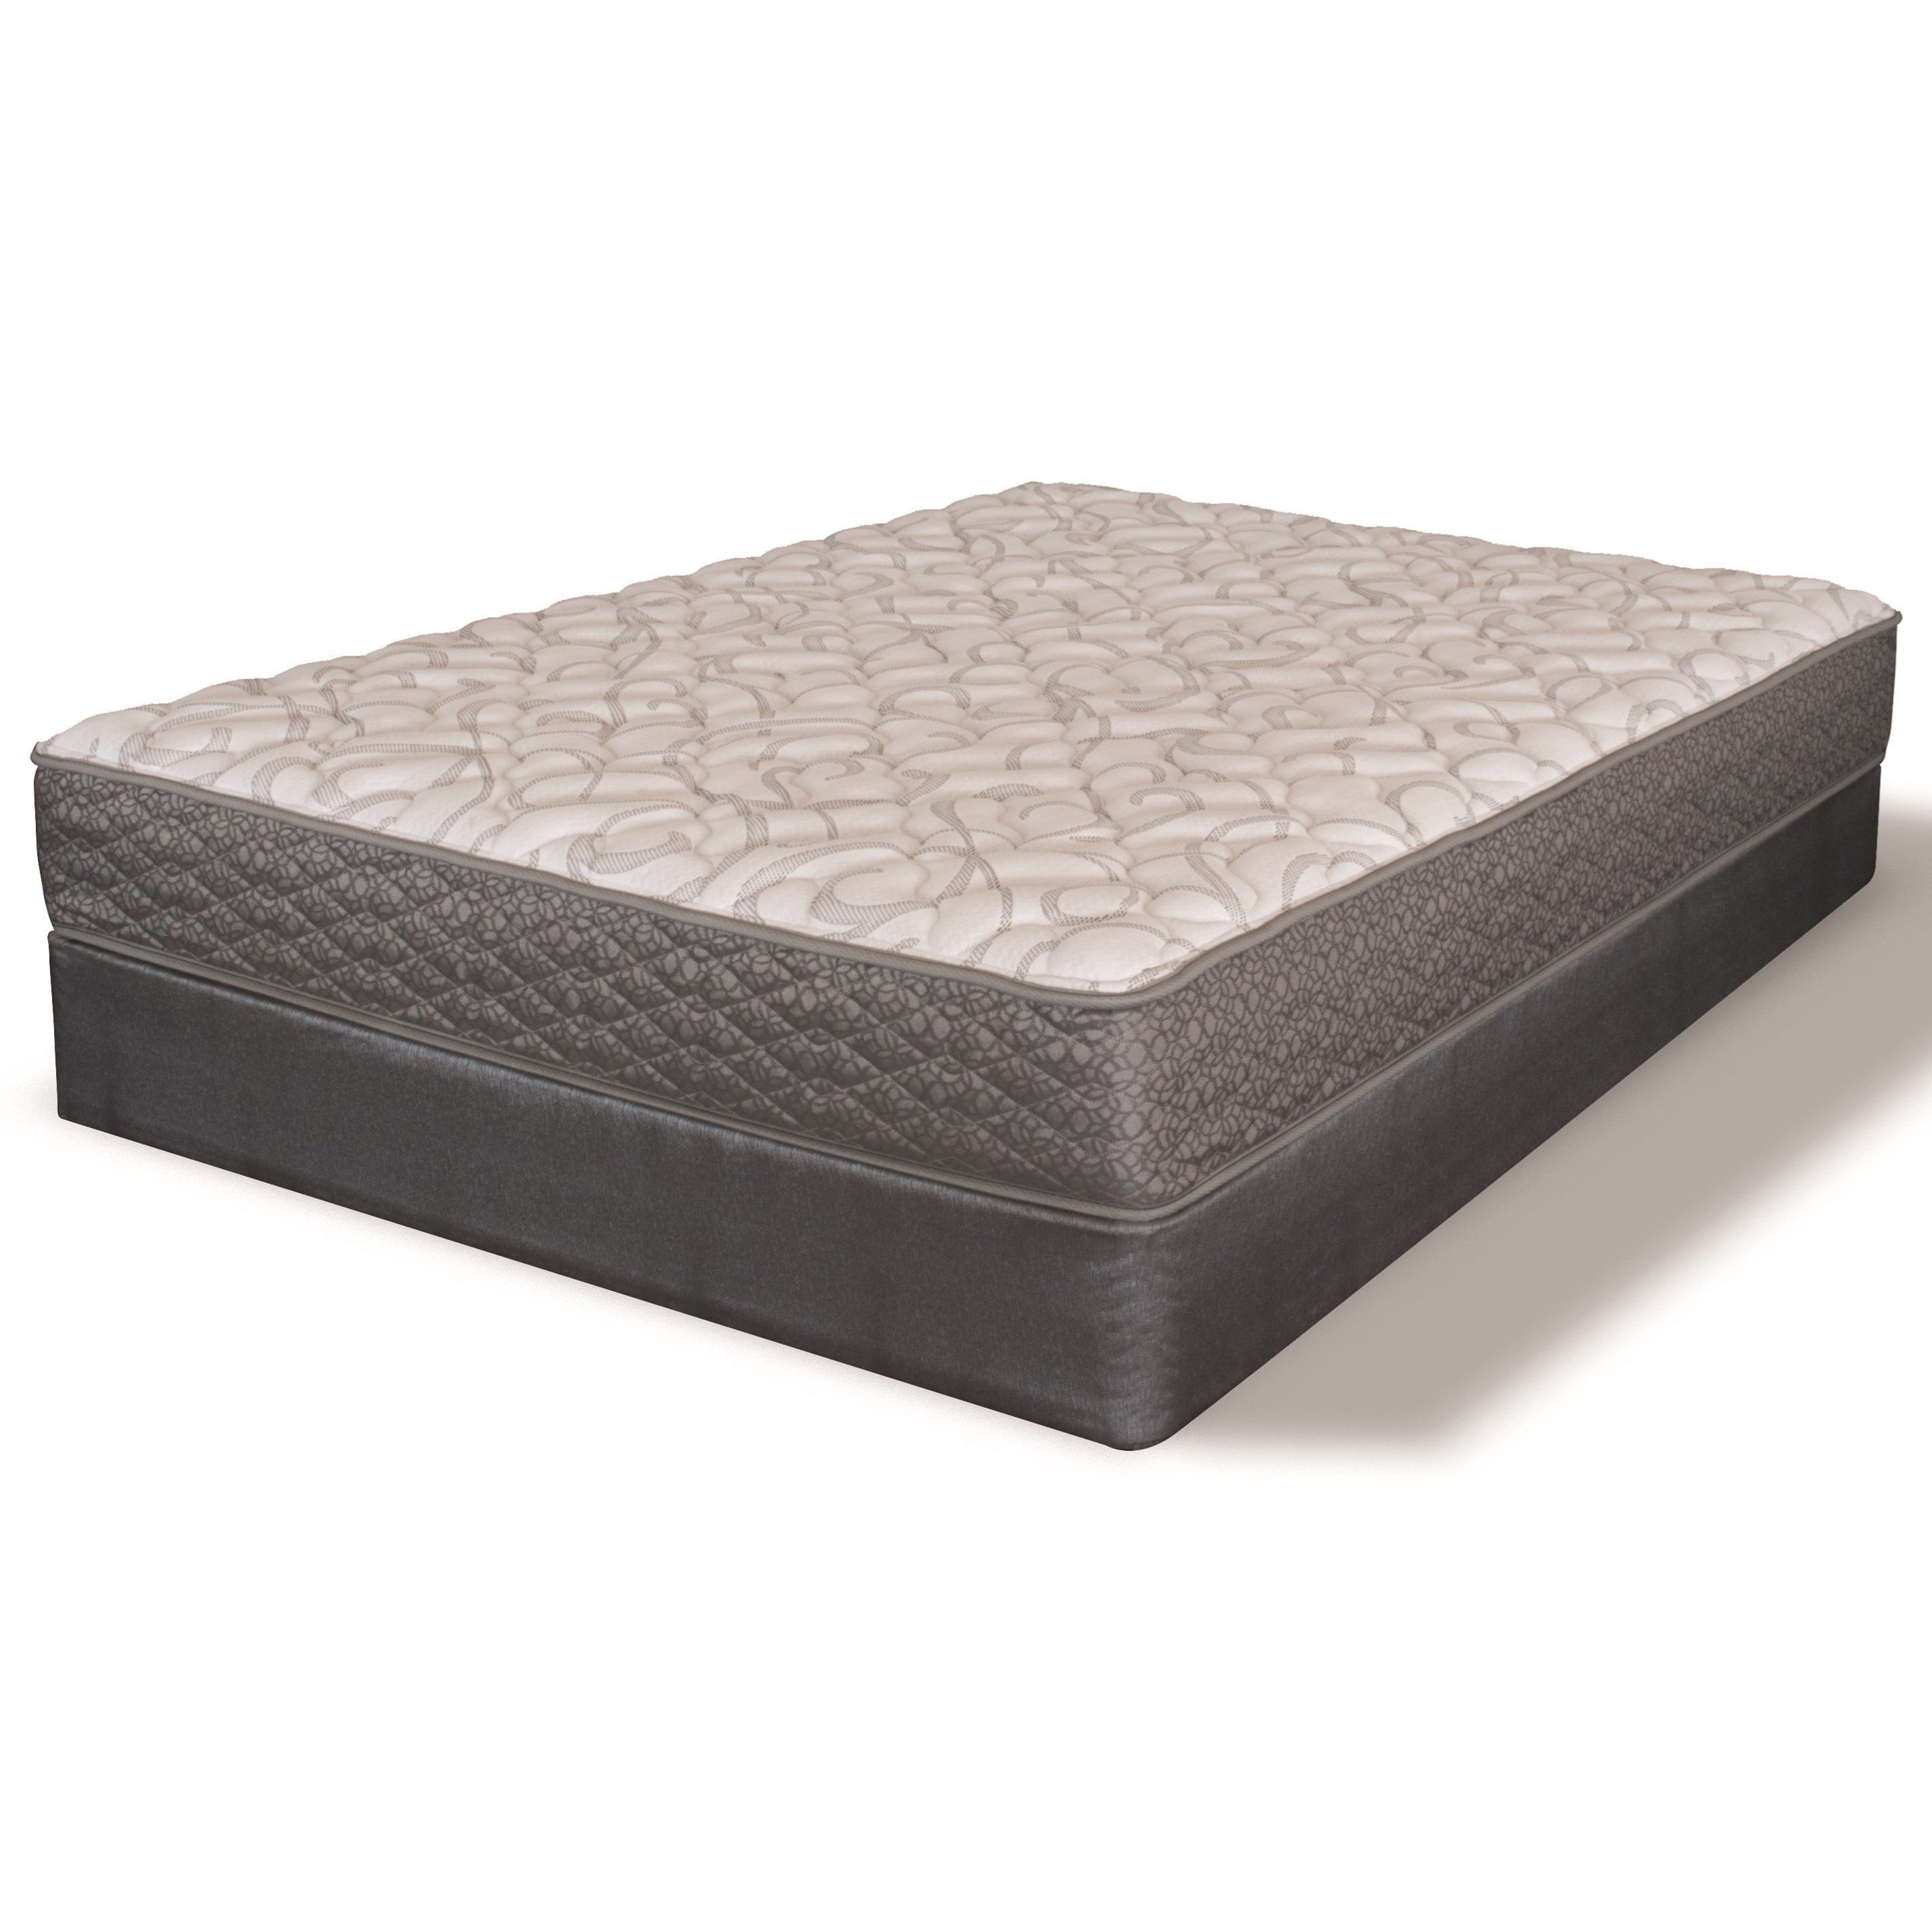 Serta iAmerica Historical Firm Twin Firm Innerspring Mattress Set - Item Number: 500959551-1010+500964699-5010